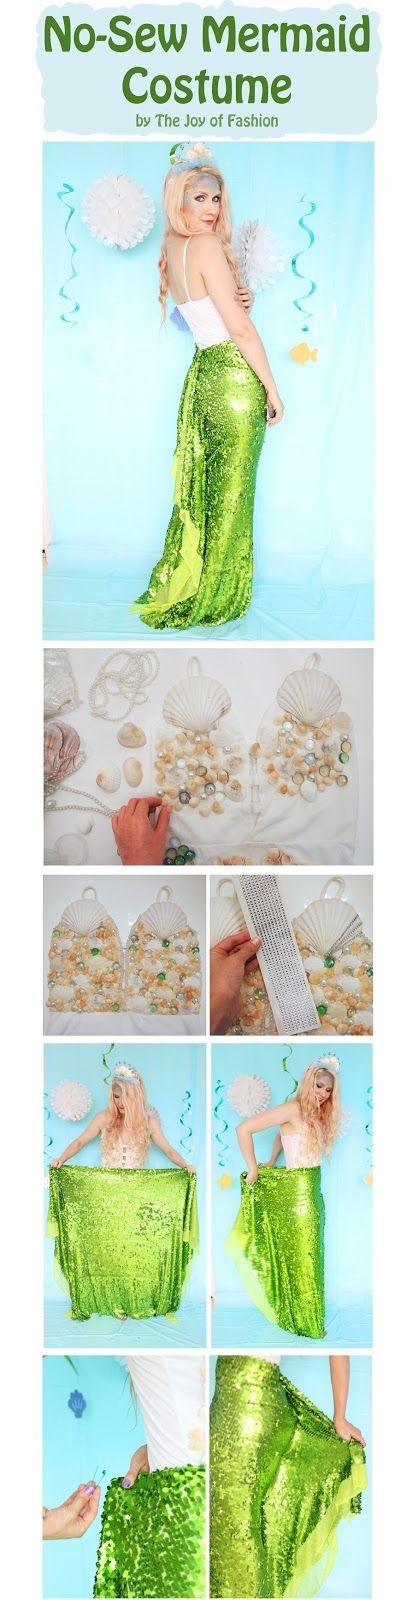 No Sew Homemade Mermaid Costume. Click through for tutorial